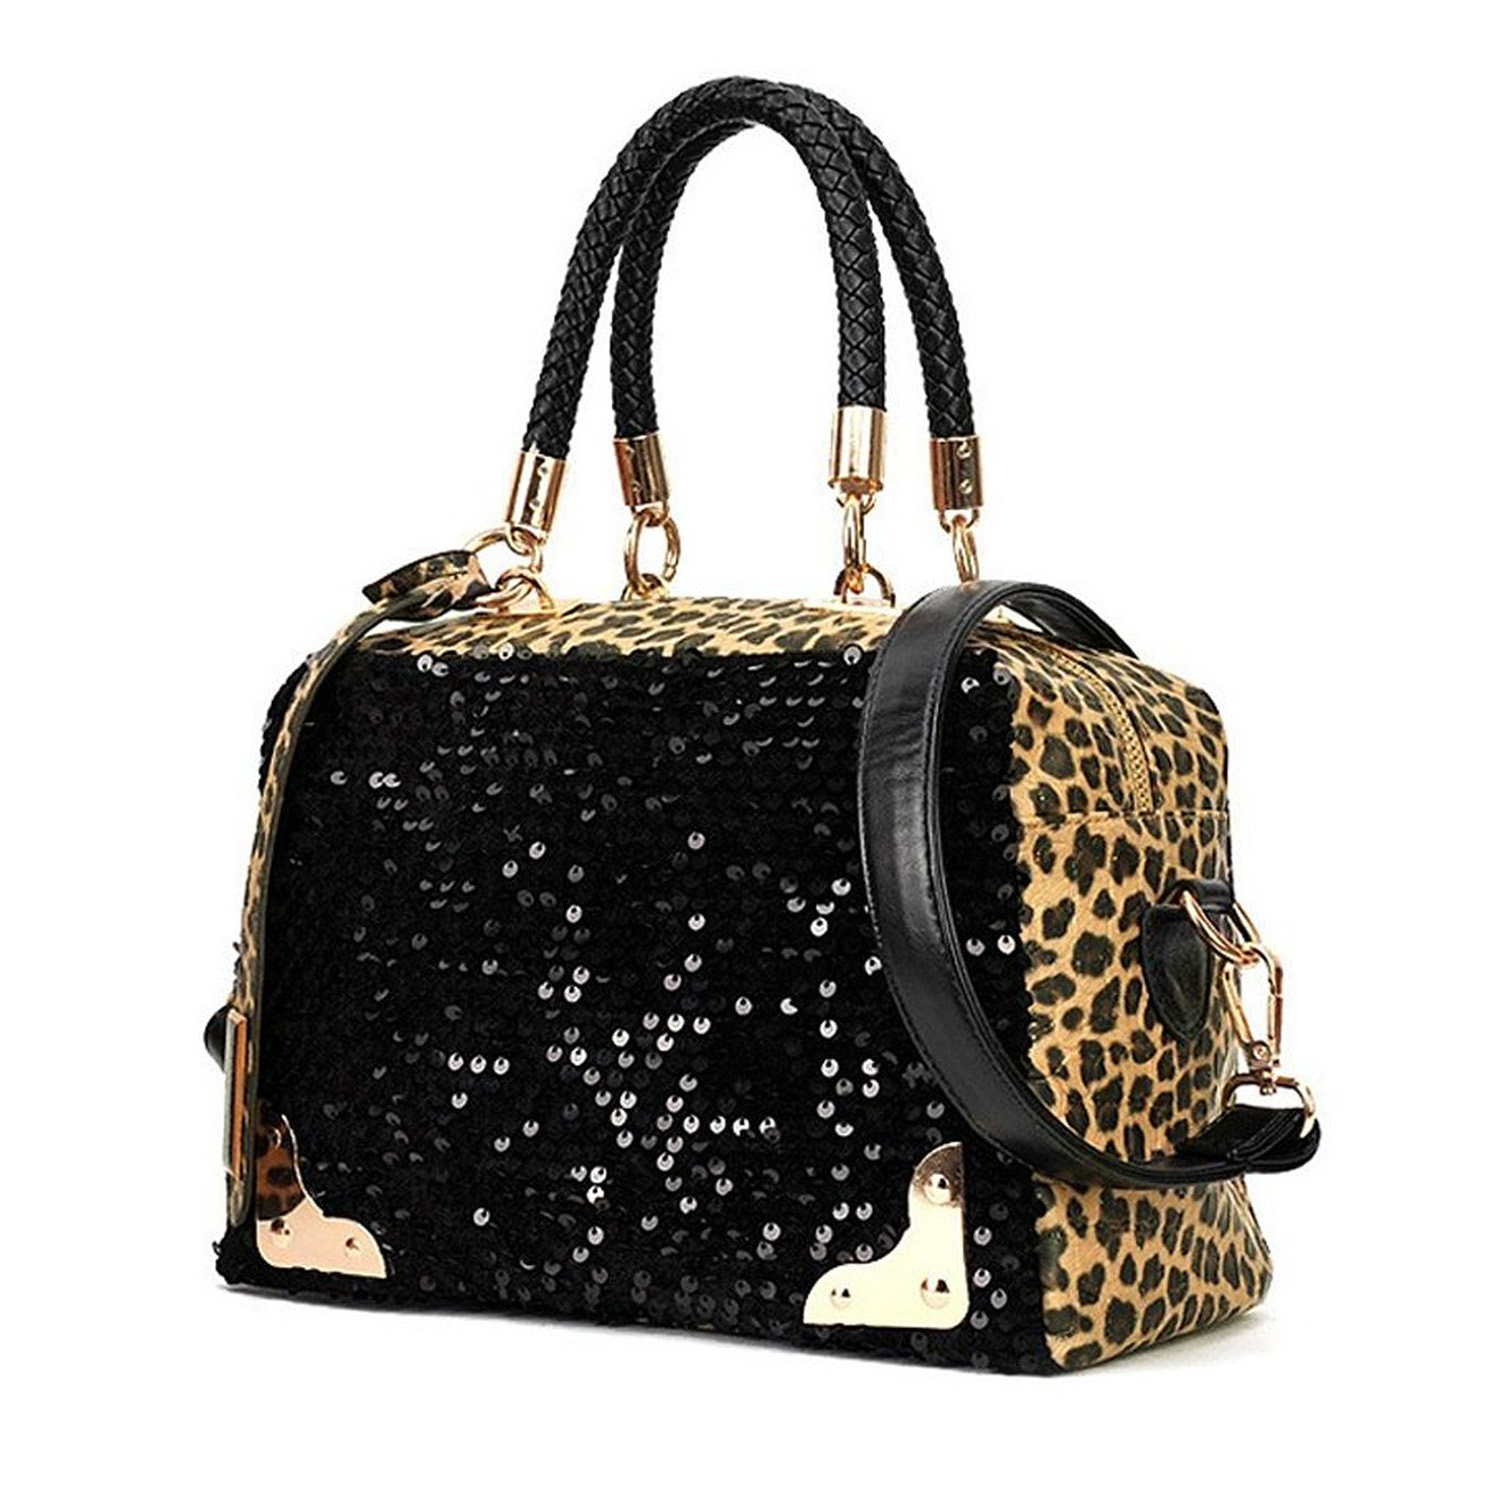 Tftp Casual Women Handbag Pu Leather Leopard Print Paillette Sequin Shoulder Bag In Bags From Luggage On Aliexpress Alibaba Group